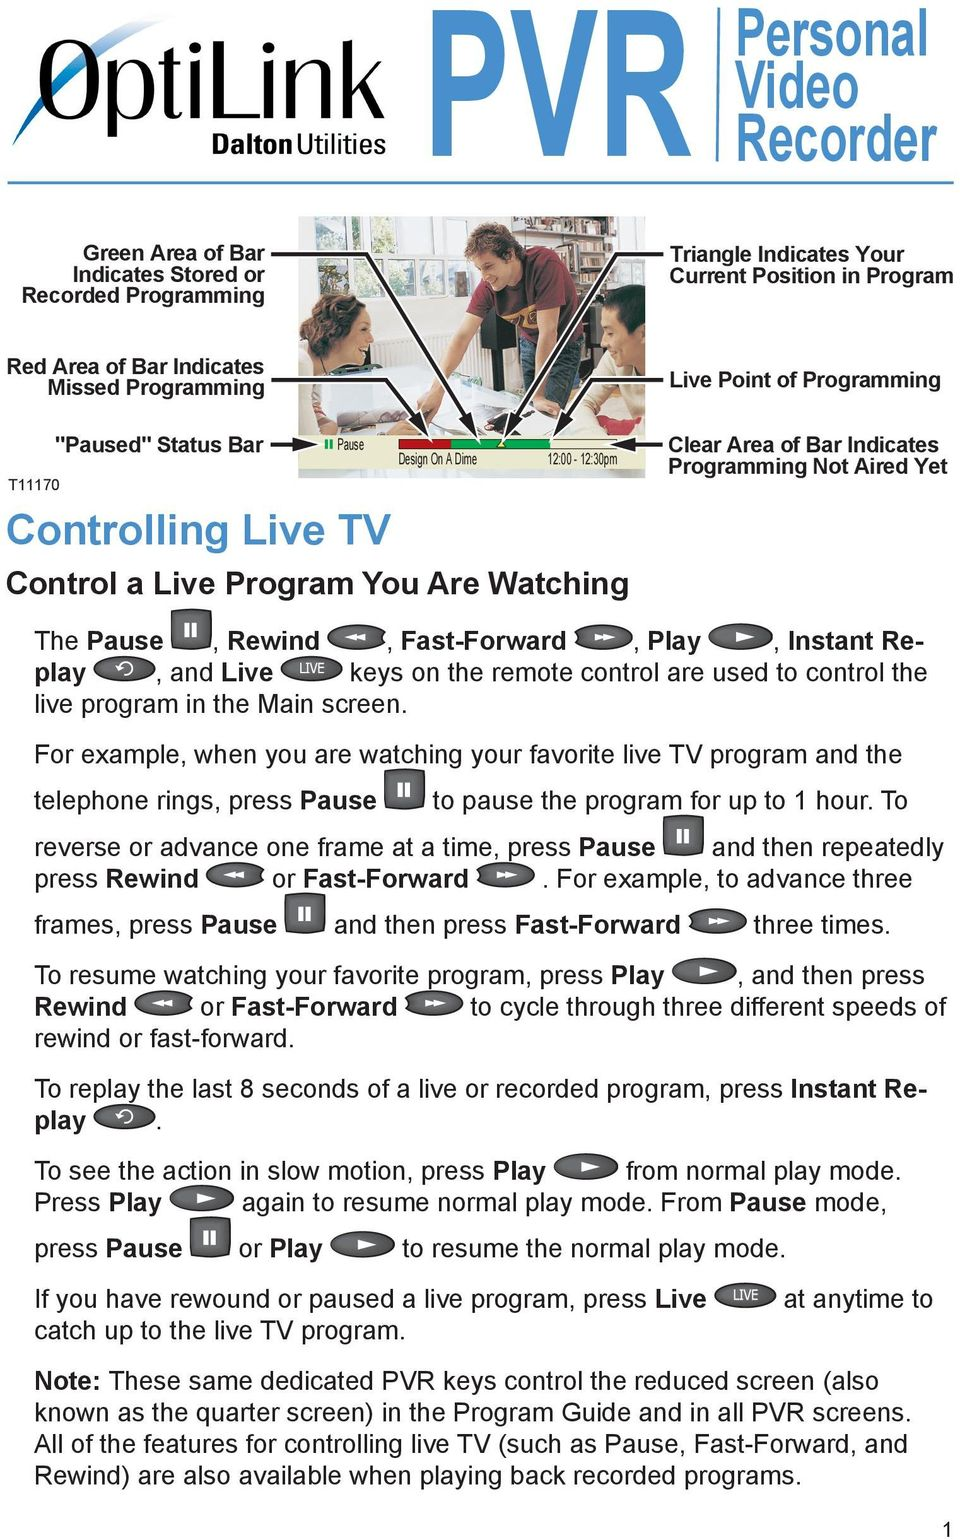 Rewind, Fast-Forward, Play, Instant Replay, and Live keys on the remote control are used to control the live program in the Main screen.